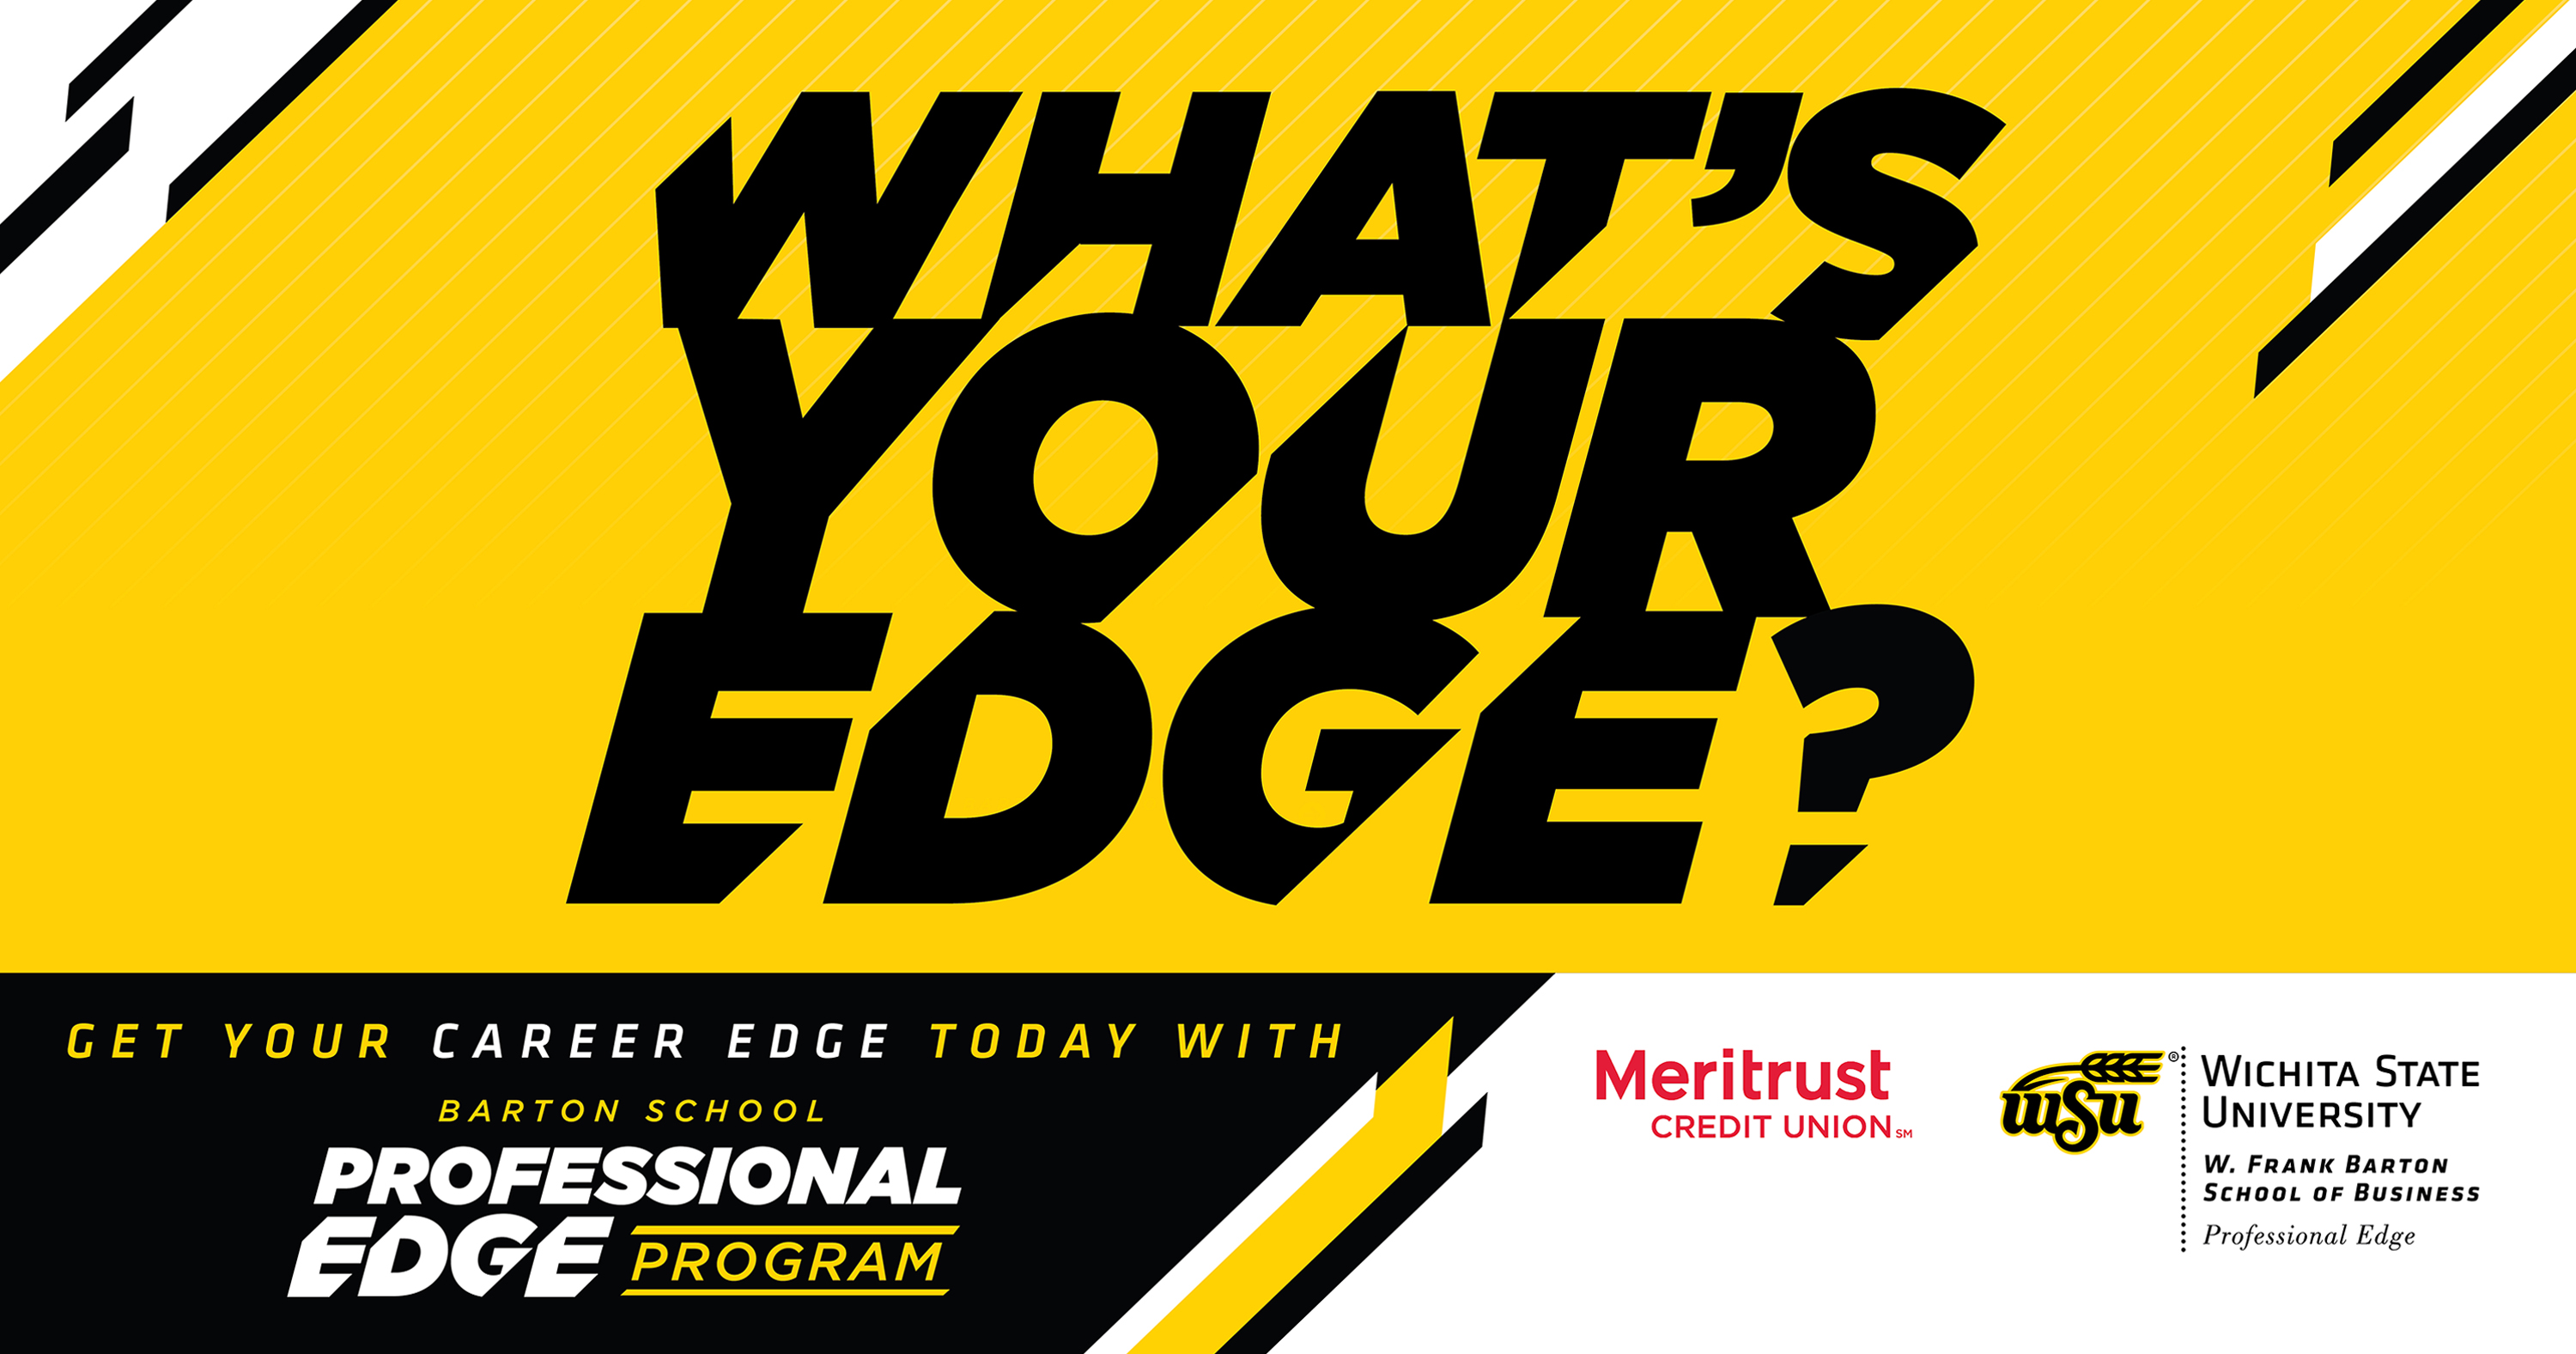 Professional Edge graphic banner: Get your career edge today with the Barton School Professional Edge Program